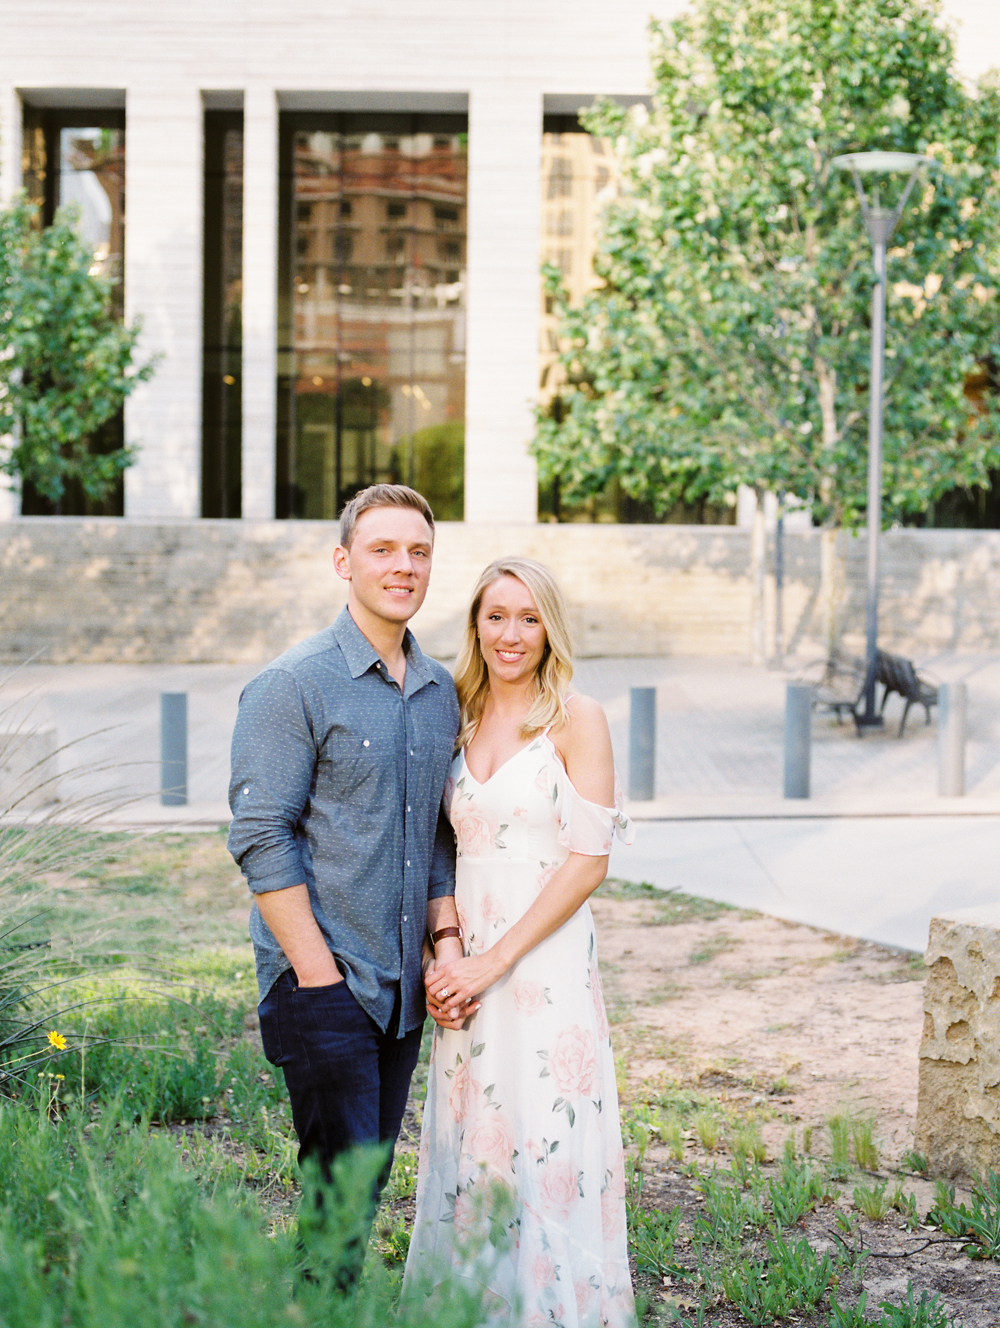 Best-Austin-Denver-California-Wedding-Photographers-fine-art-film-Engagement-Session-36.jpg